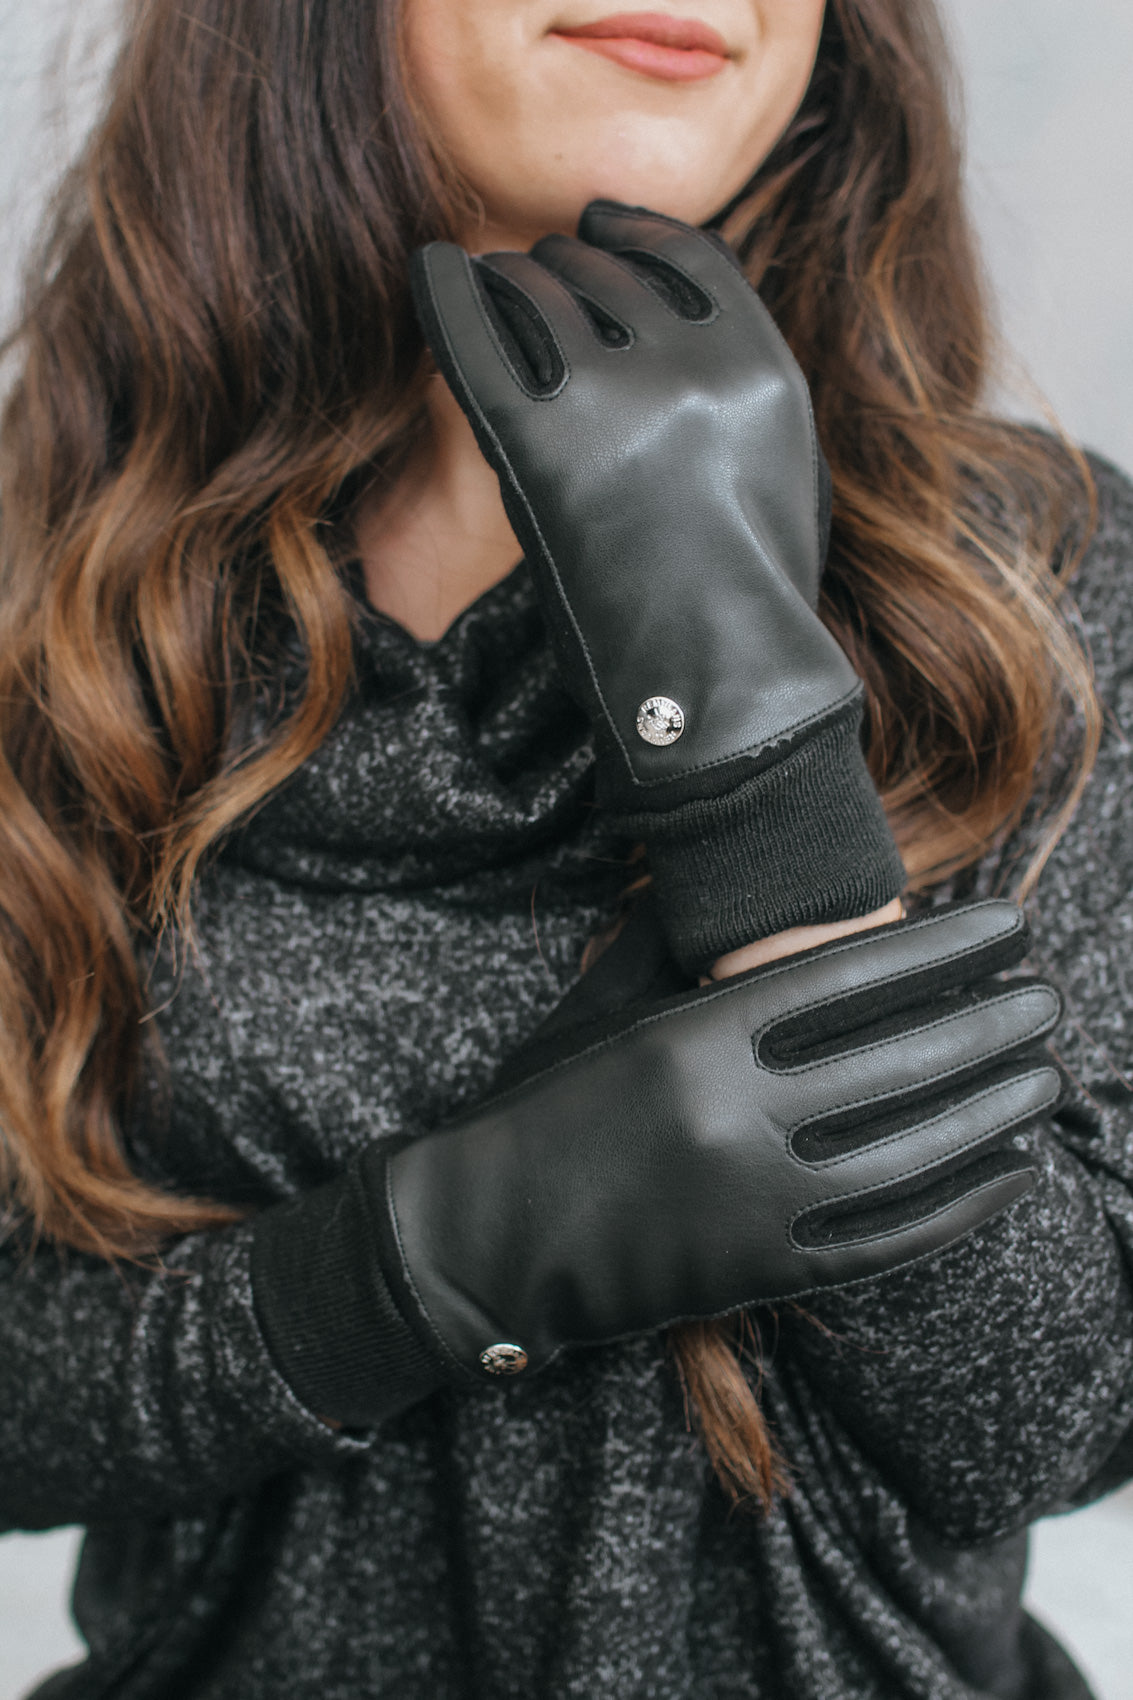 Fabric Wrist Leather Top Glove